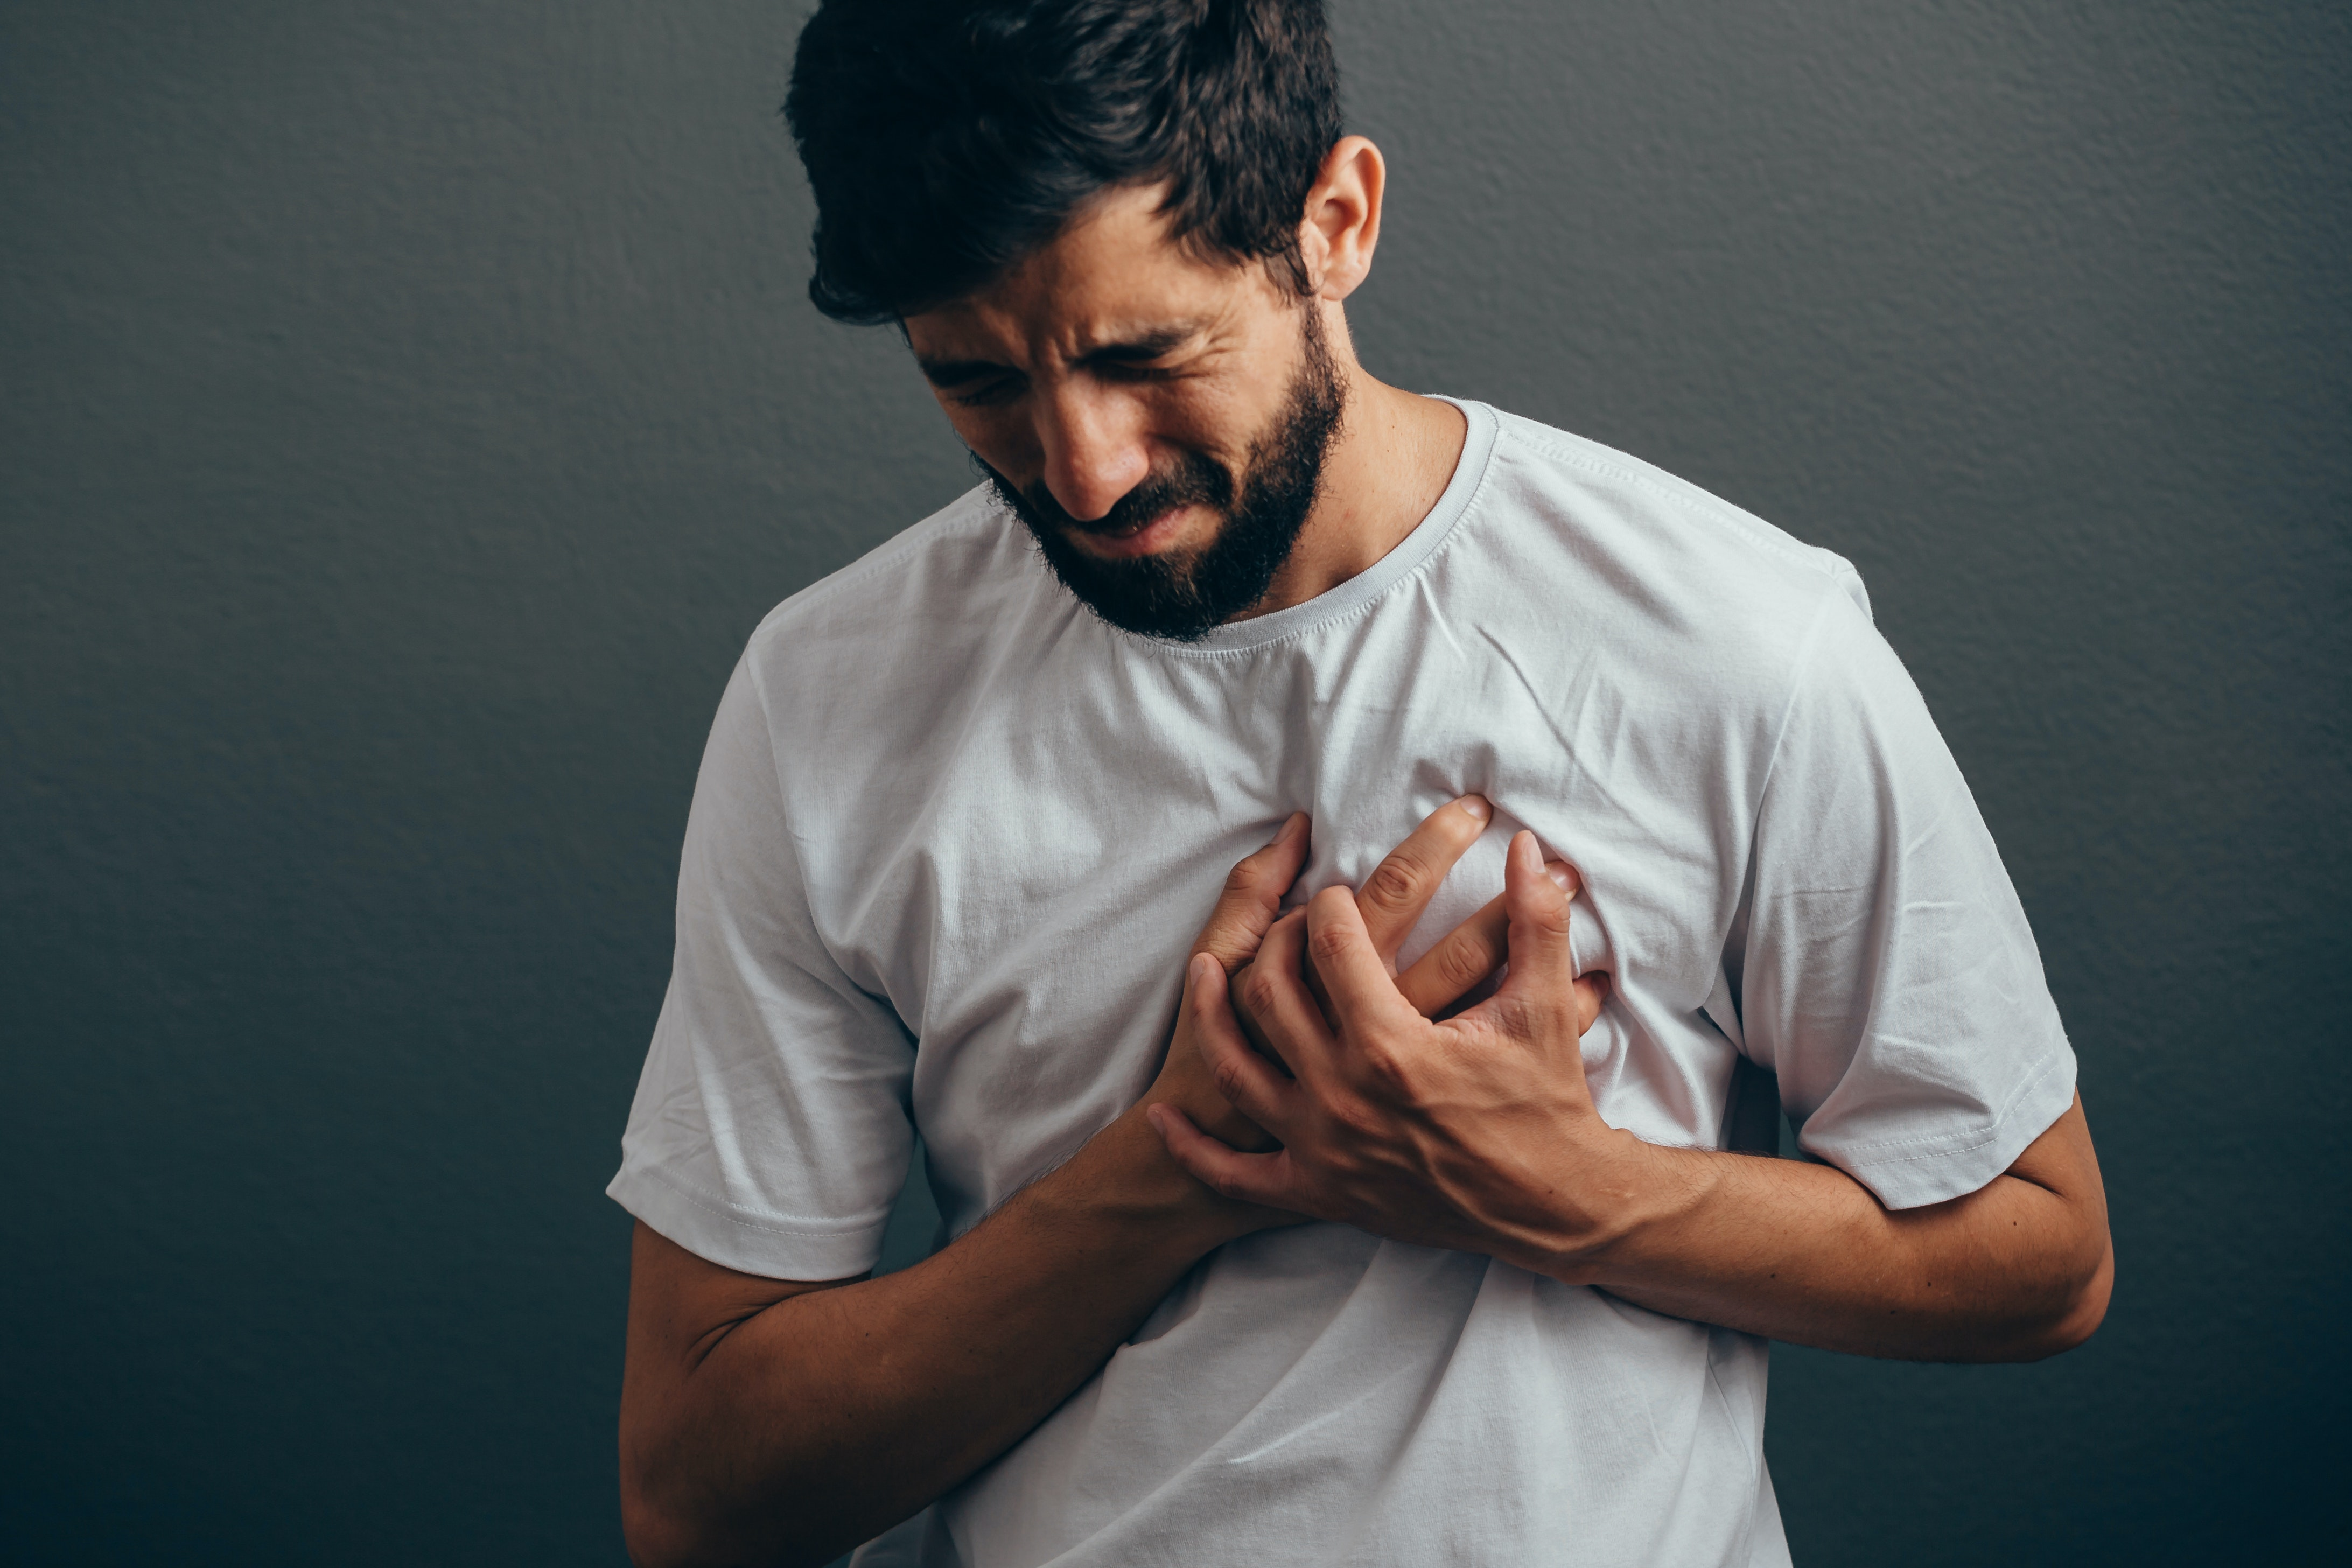 An image depicting a person suffering from tight, heavy, squeezing chest pain symptoms